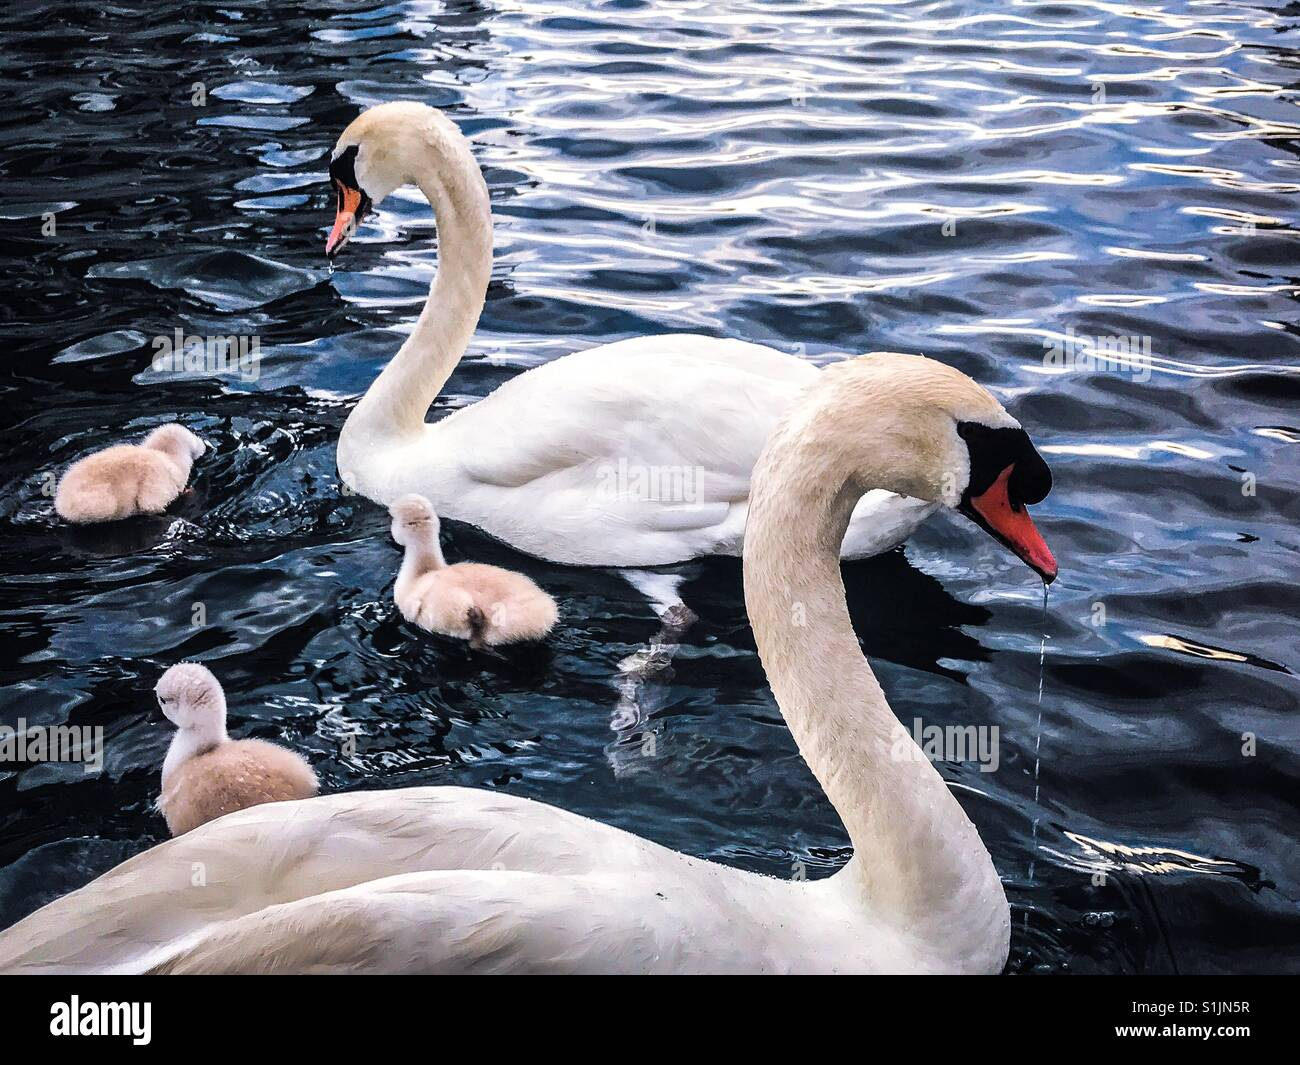 Swans on lake with their babies - Stock Image